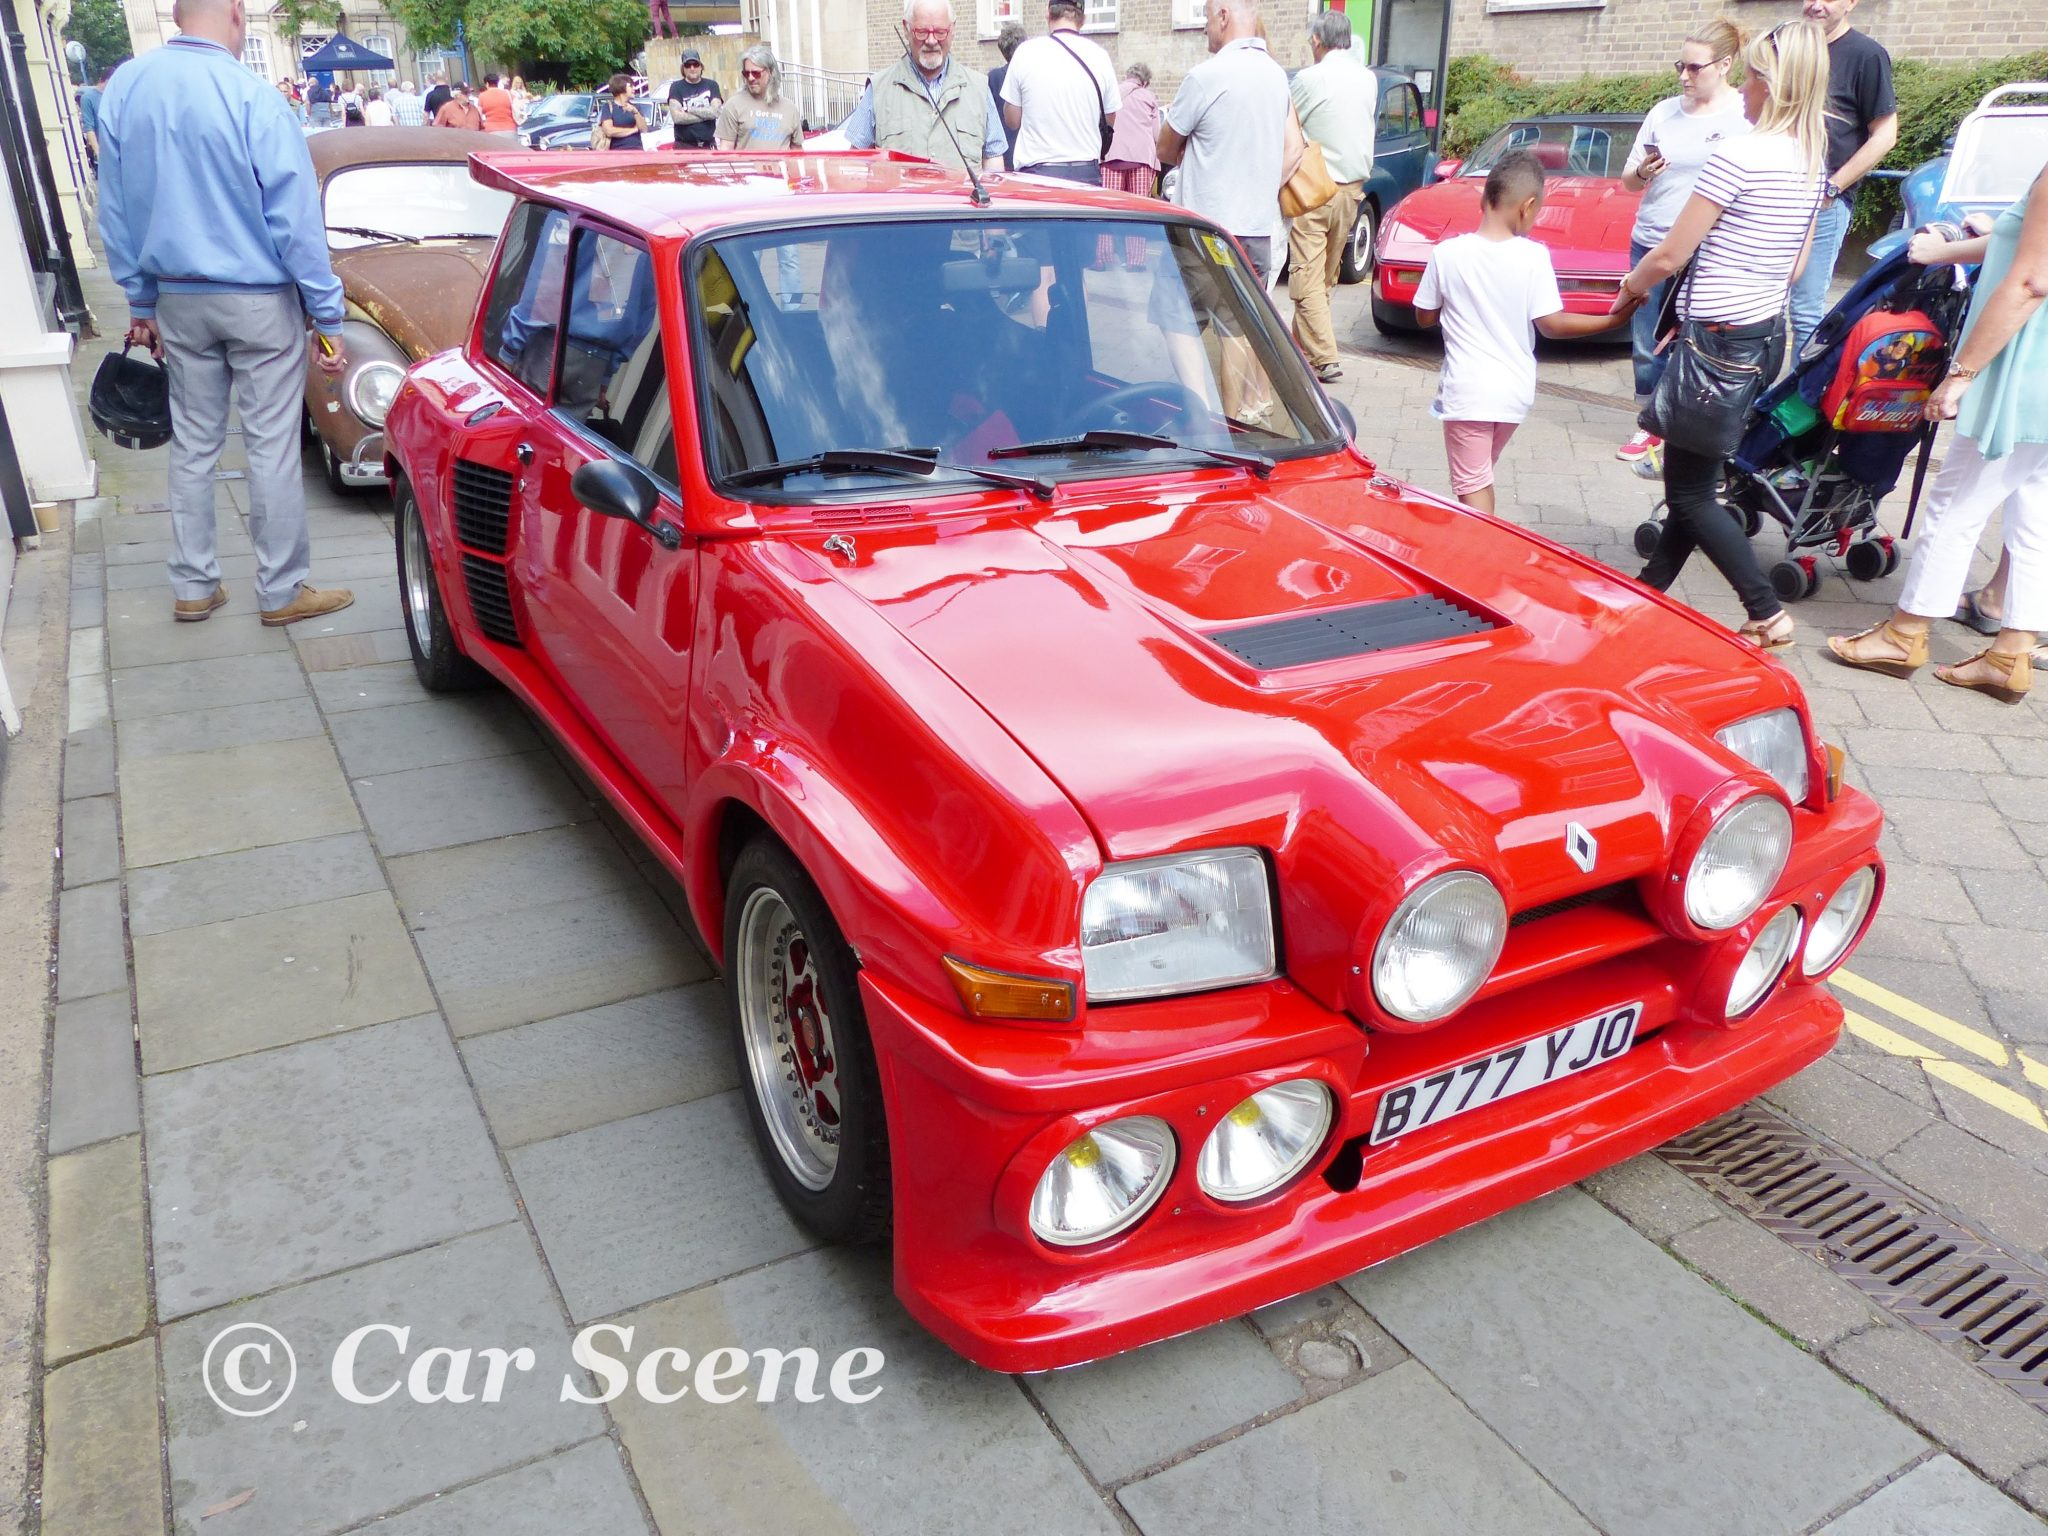 1980 - 84 Renault 5 Turbo with Body Kit front three quarters view